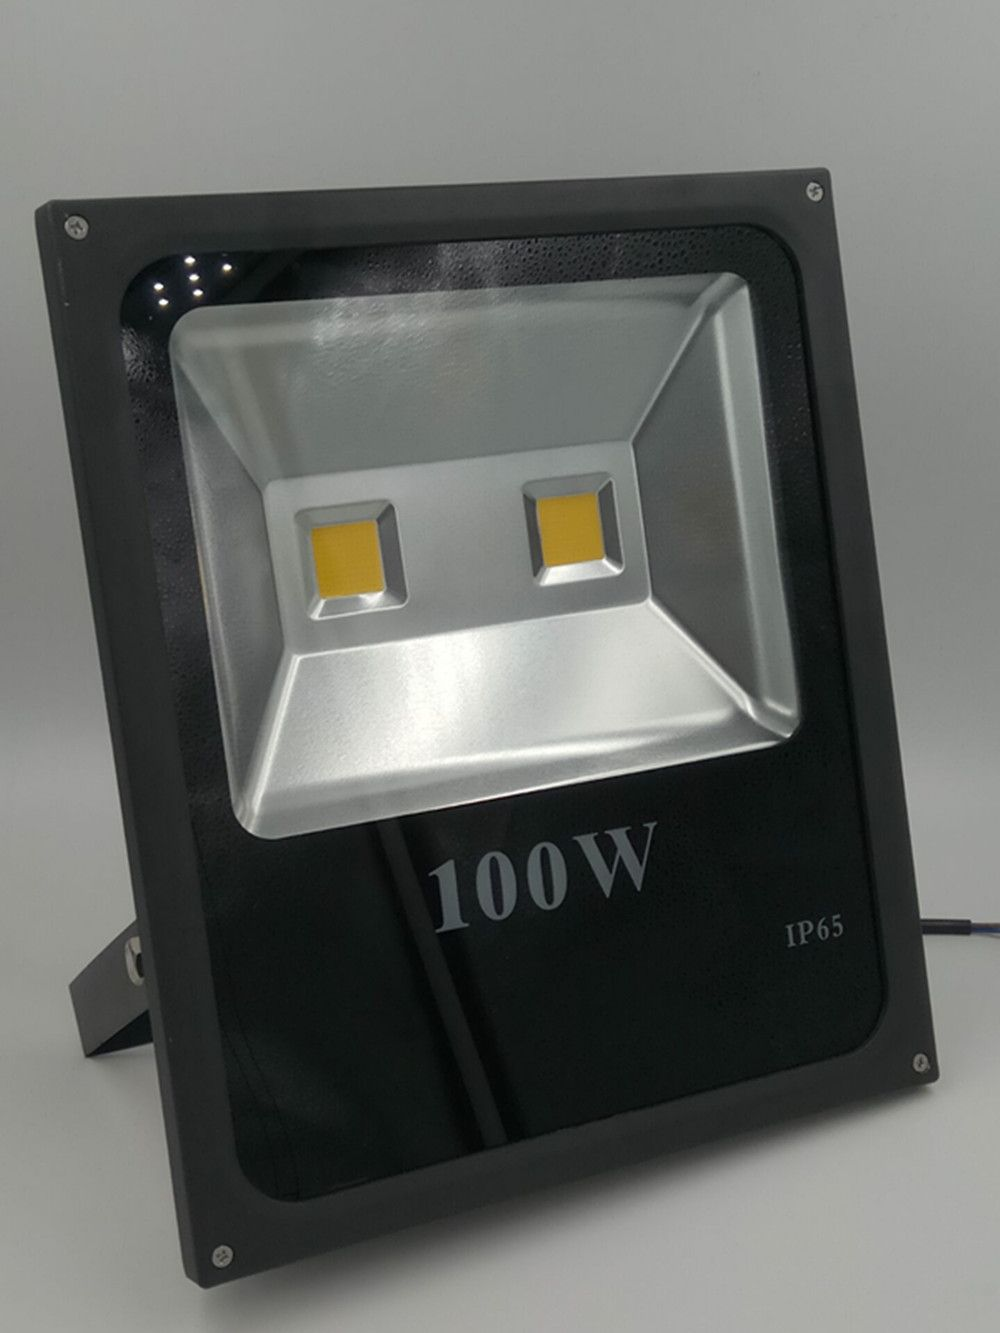 Led Outdoor Flood Light Bulbs Inspiration Led Flood Light 100W Led Floodlight Ip65 Waterproof 220V 110V Led Review